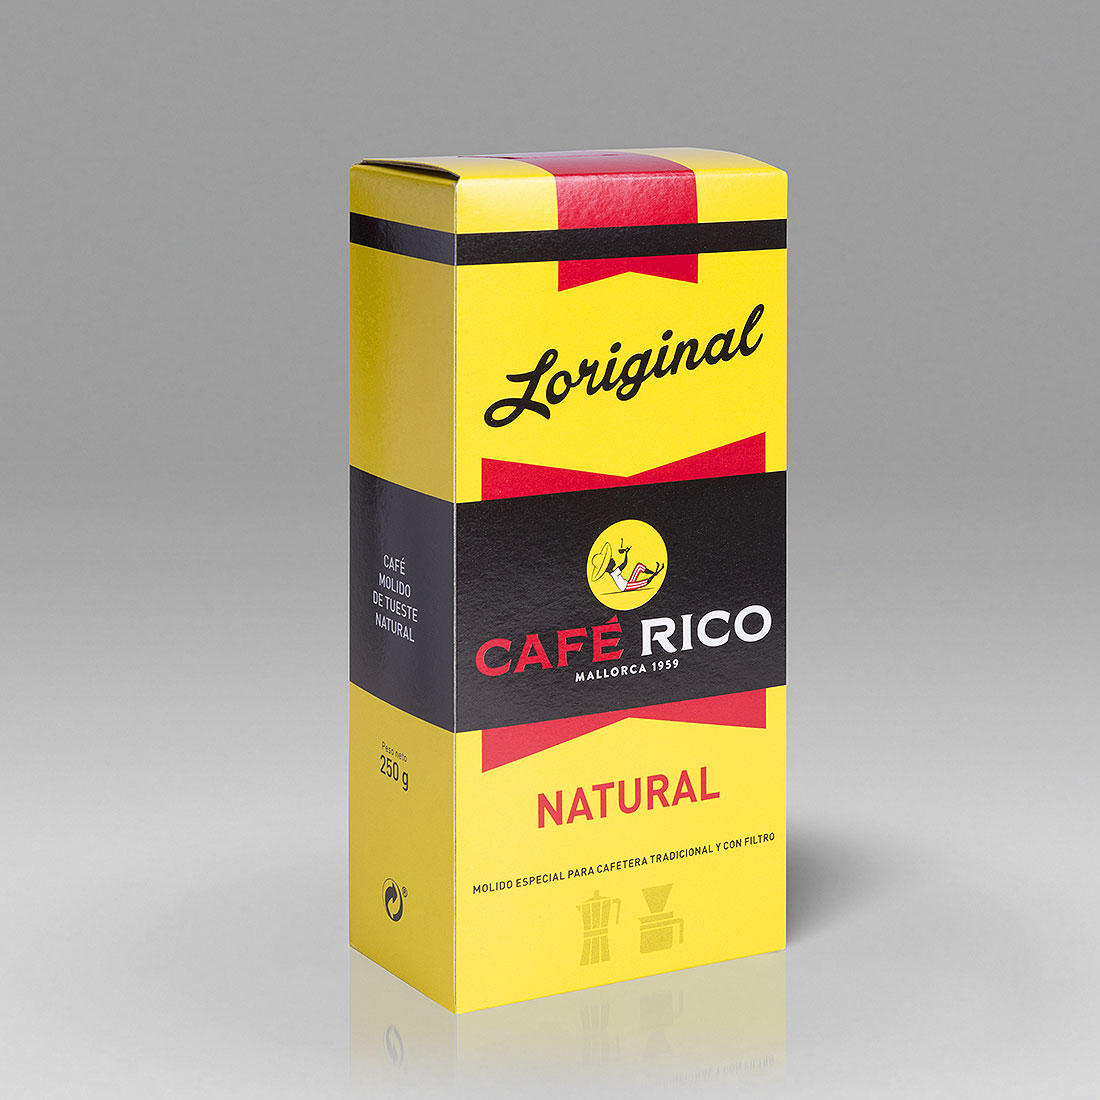 Cafe-Rico-Loriginal-Natural